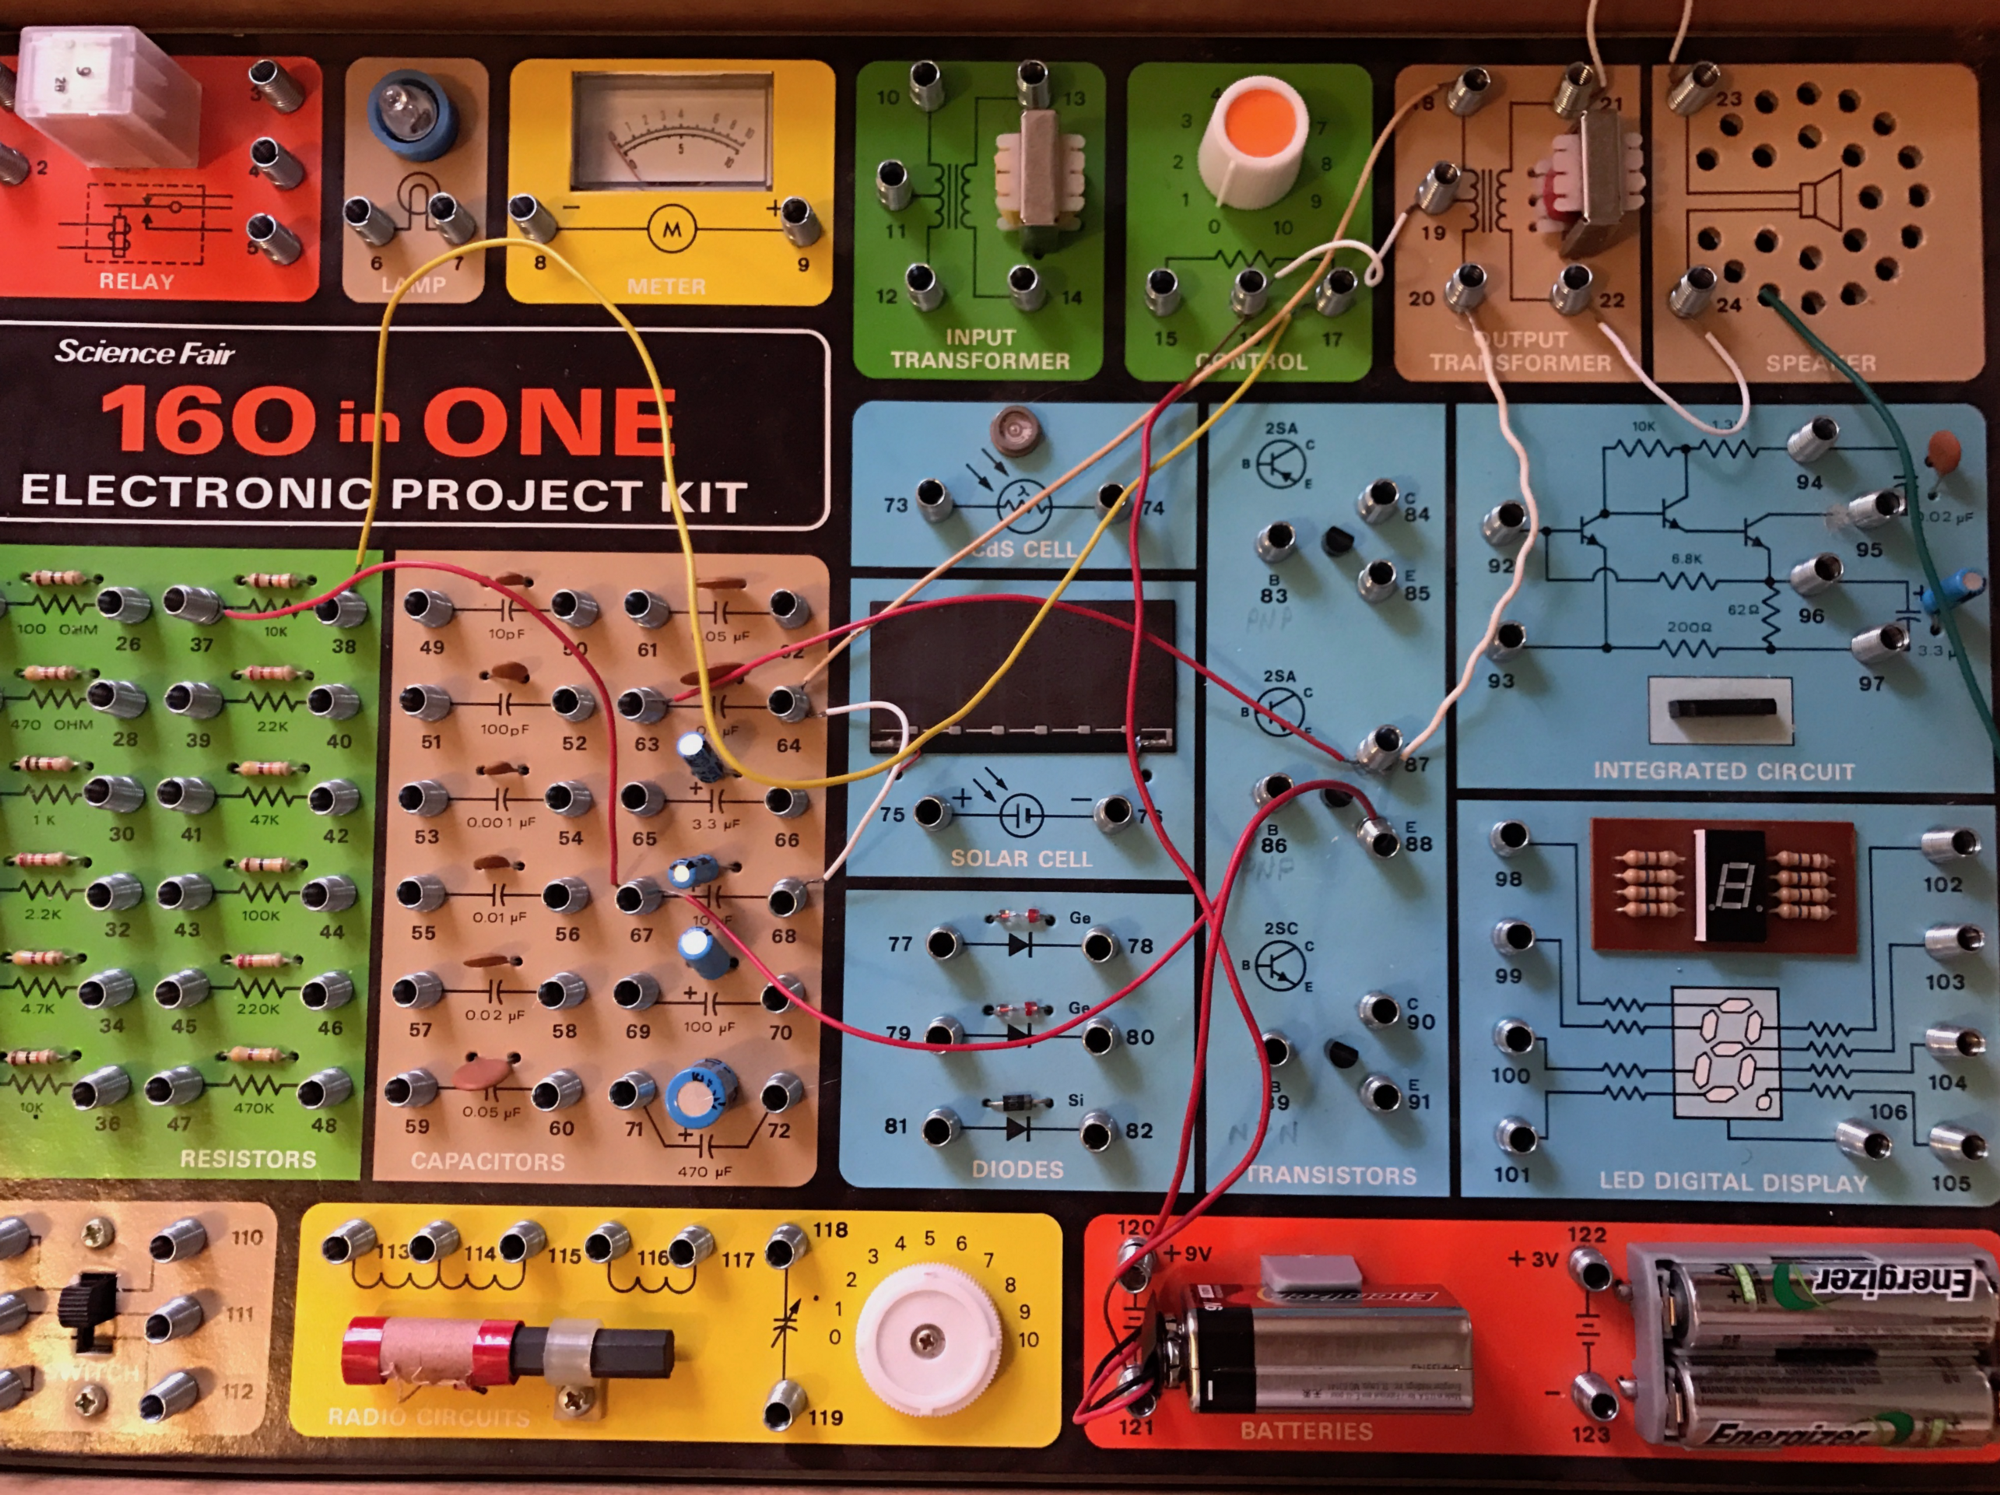 Electronic Project Kits Hands On With A Vintage 160 In 1 If You Like The Elenco Snap Circuits Light Set Then May We Also Speaker Is Louder Than I Remember It Maybe Because Of Fresh 9v Batteries Circuit Runs Well Off 3v